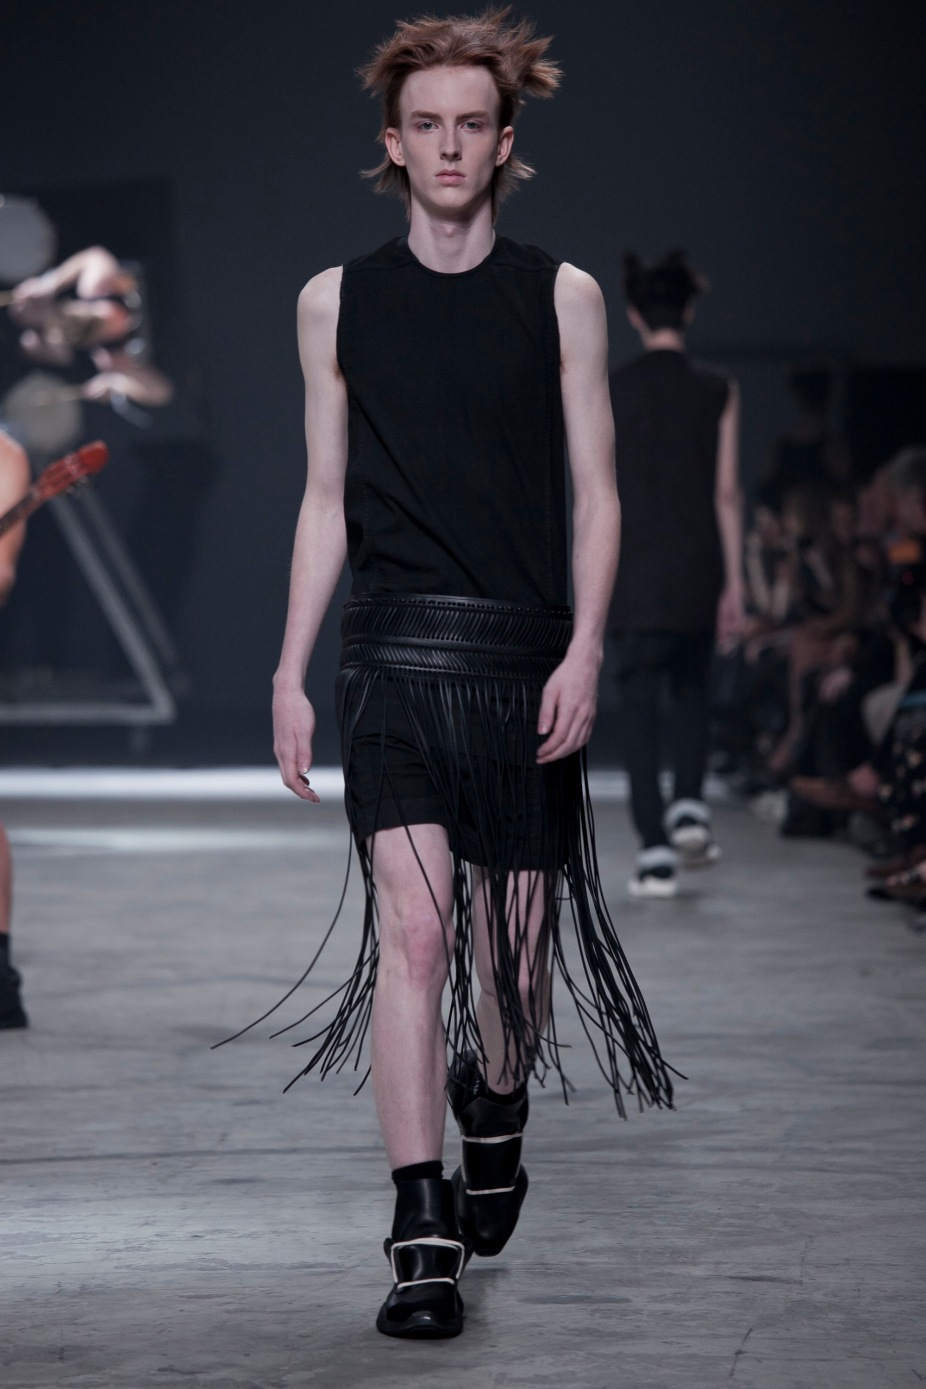 Rick Owens fashion show in Paris, Menswear Spring Summer collection 2014